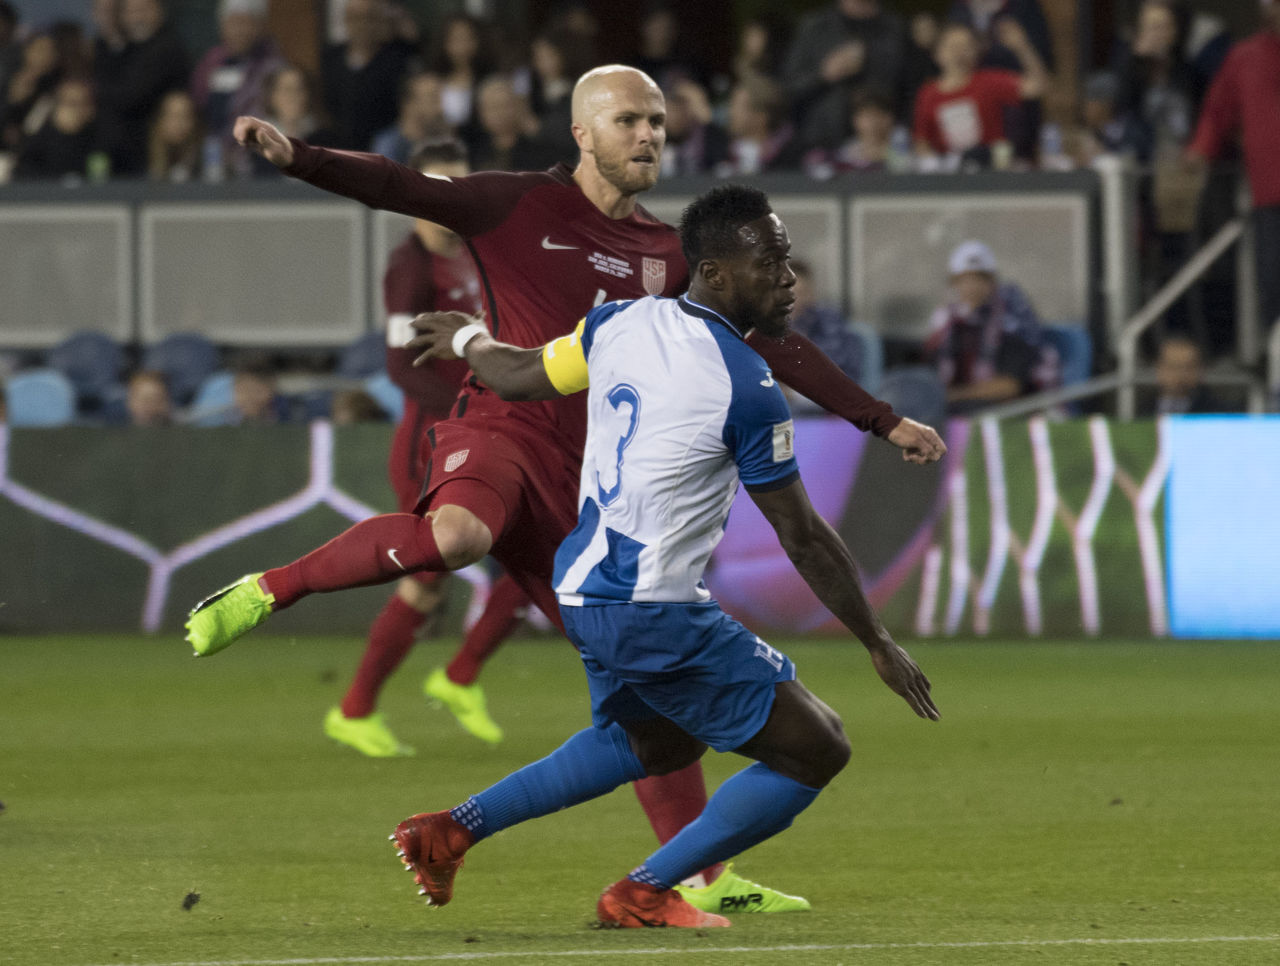 Cropped 2017 03 25t035330z 2063575822 nocid rtrmadp 3 soccer men s world cup soccer qualifier honduras at usa